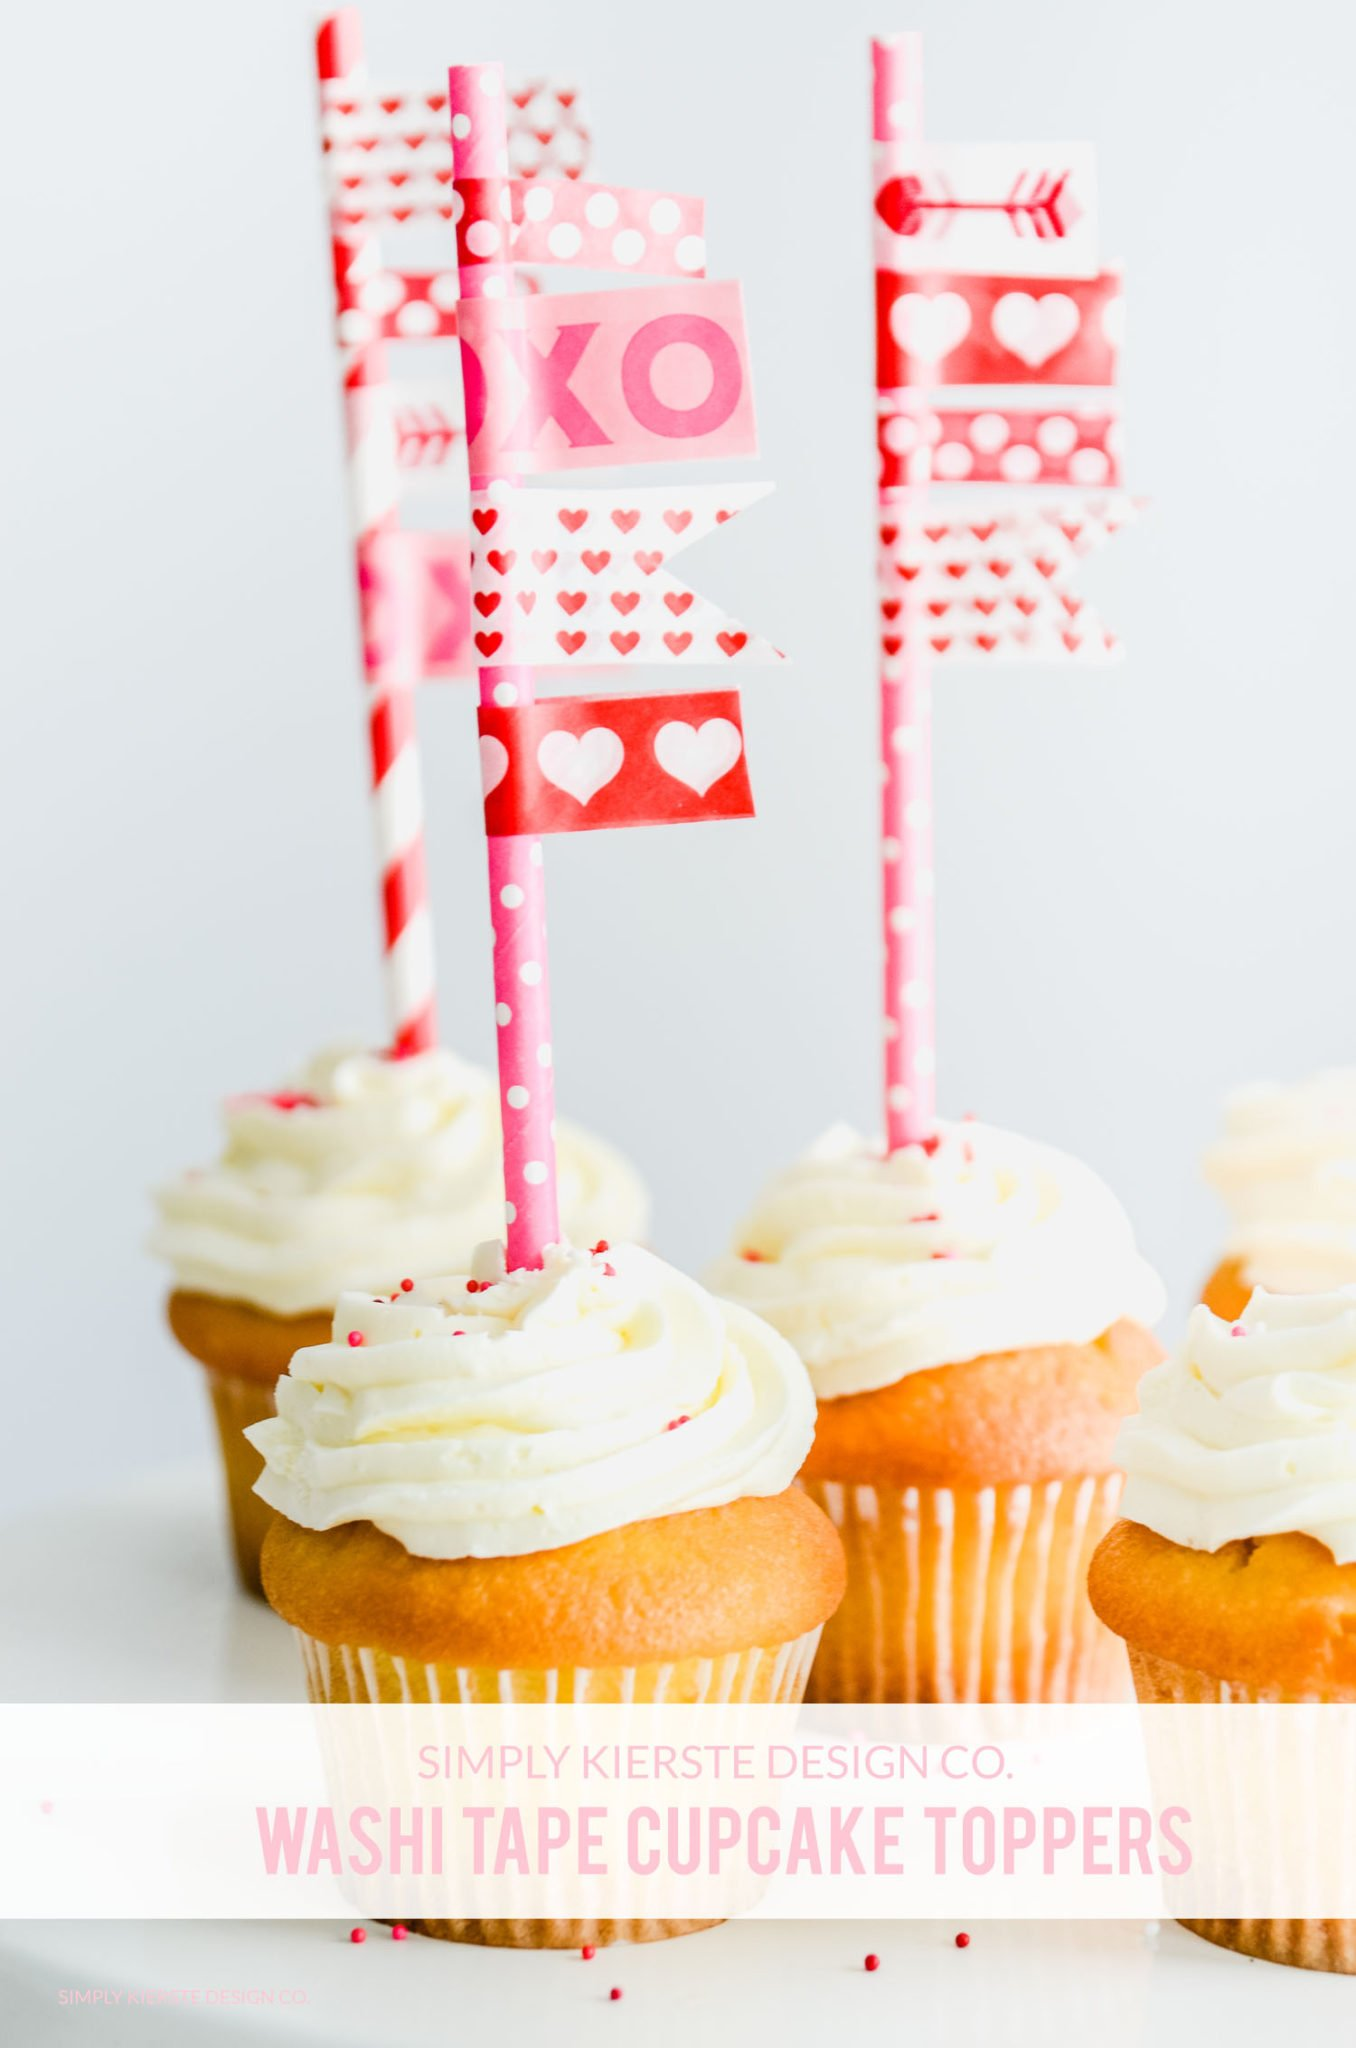 Washi Tape Cupcake Toppers | Valentine's Day | oldsaltfarm.com #washitape #cupcaketoppers #valentinesdaytreats #valentinesdayideas